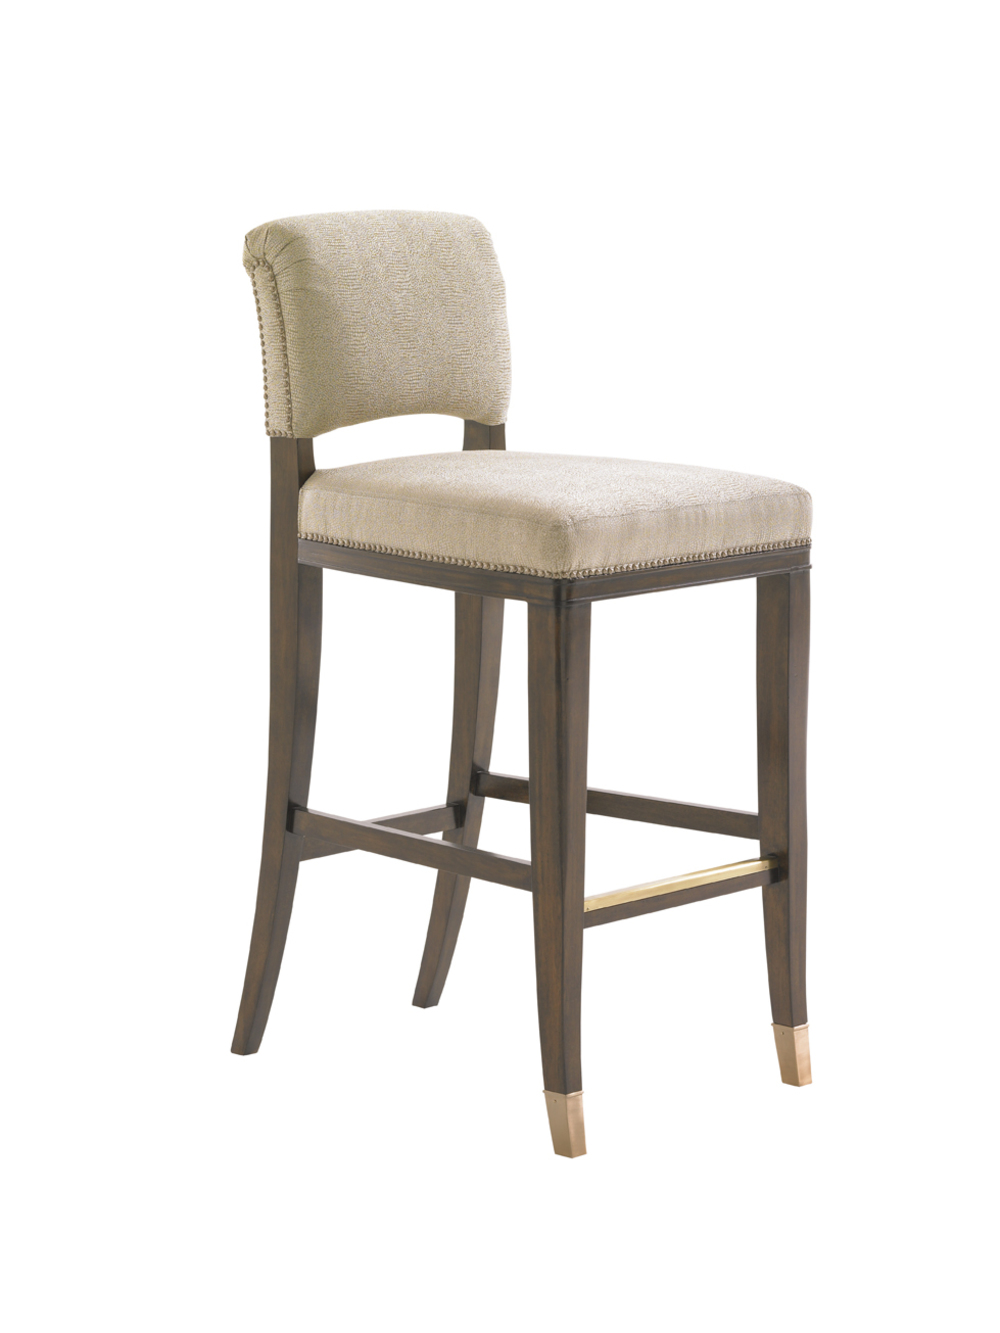 Lexington - LaSalle Bar Stool